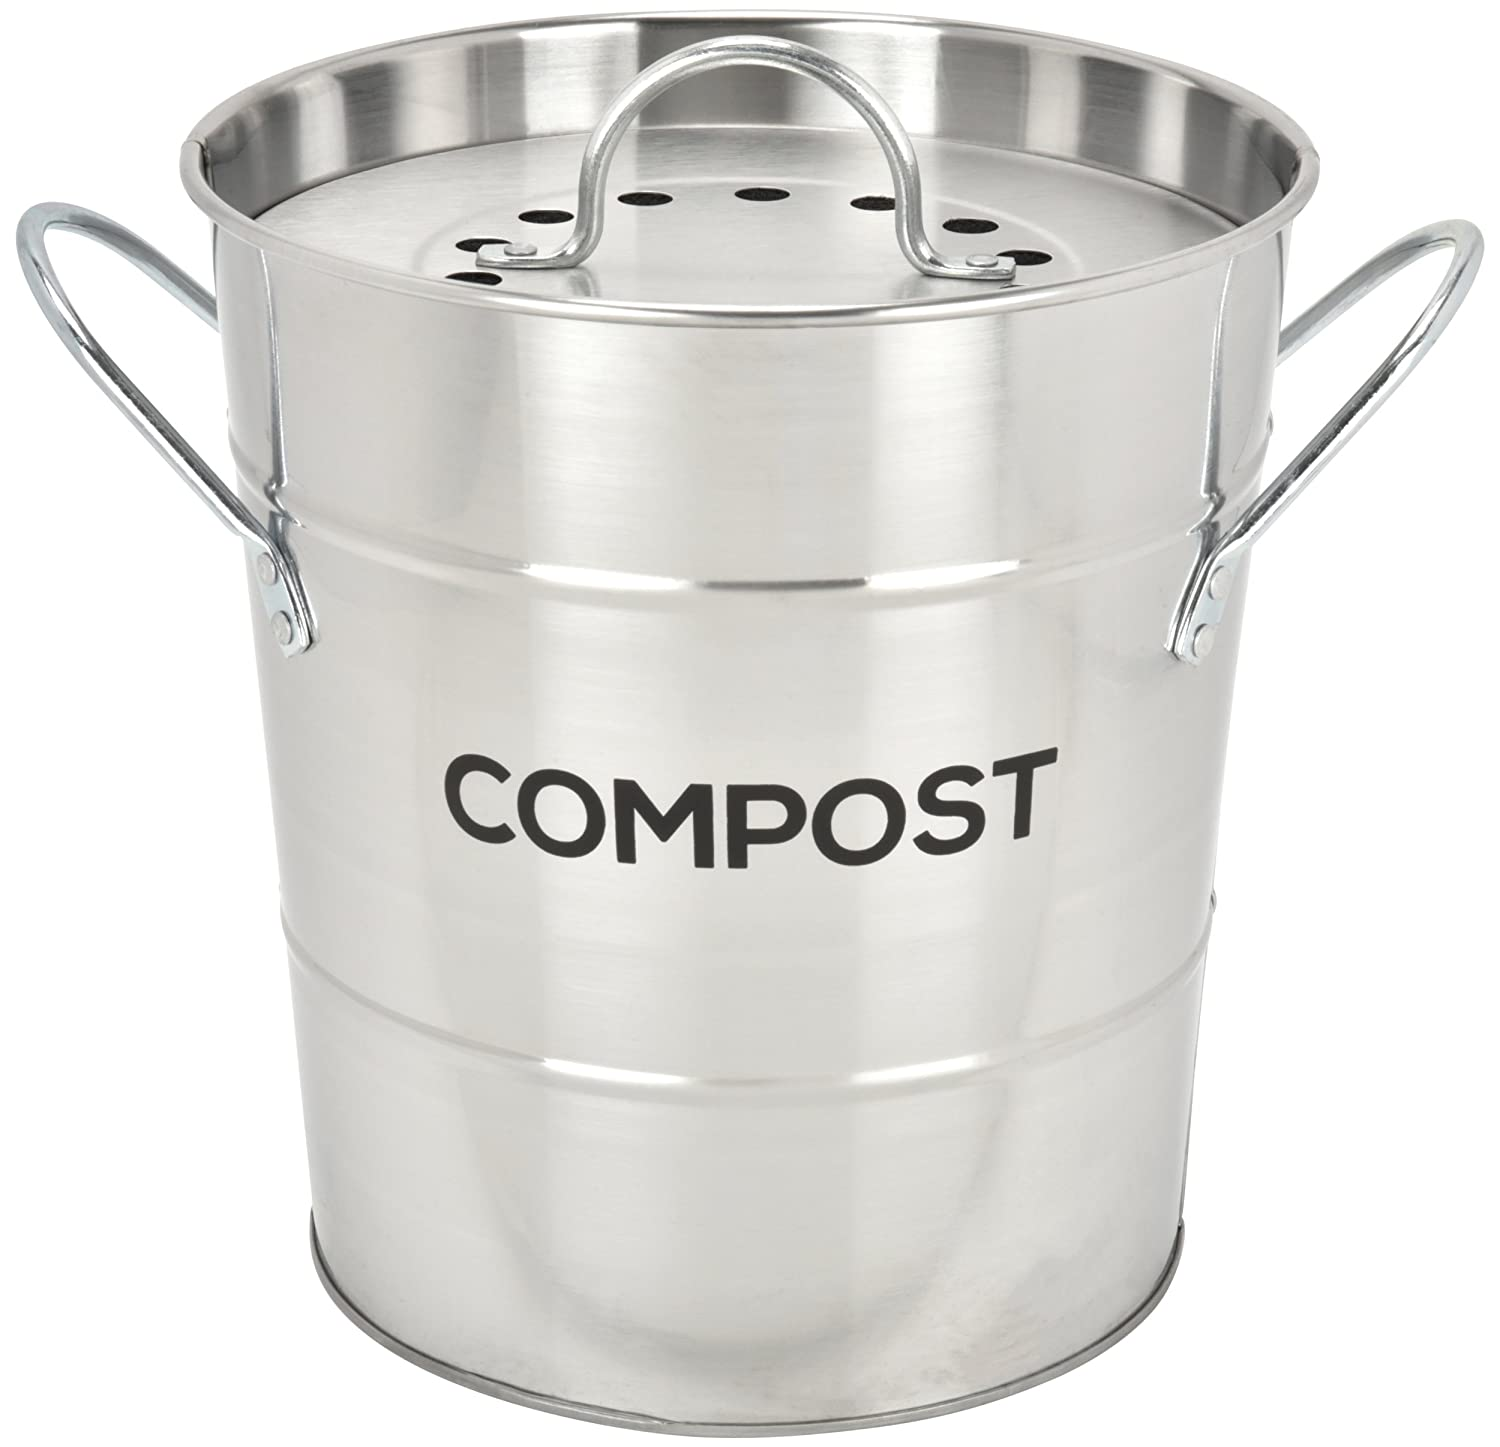 Spigo Indoor Kitchen Compost BIN, Great for Food Scraps, Includes Charcoal Filter for Odor Absorbing, Removable Clean Plastic Bucket, Handles, Durable Stainless Retro Design, 1 Gallon, Satin Silver